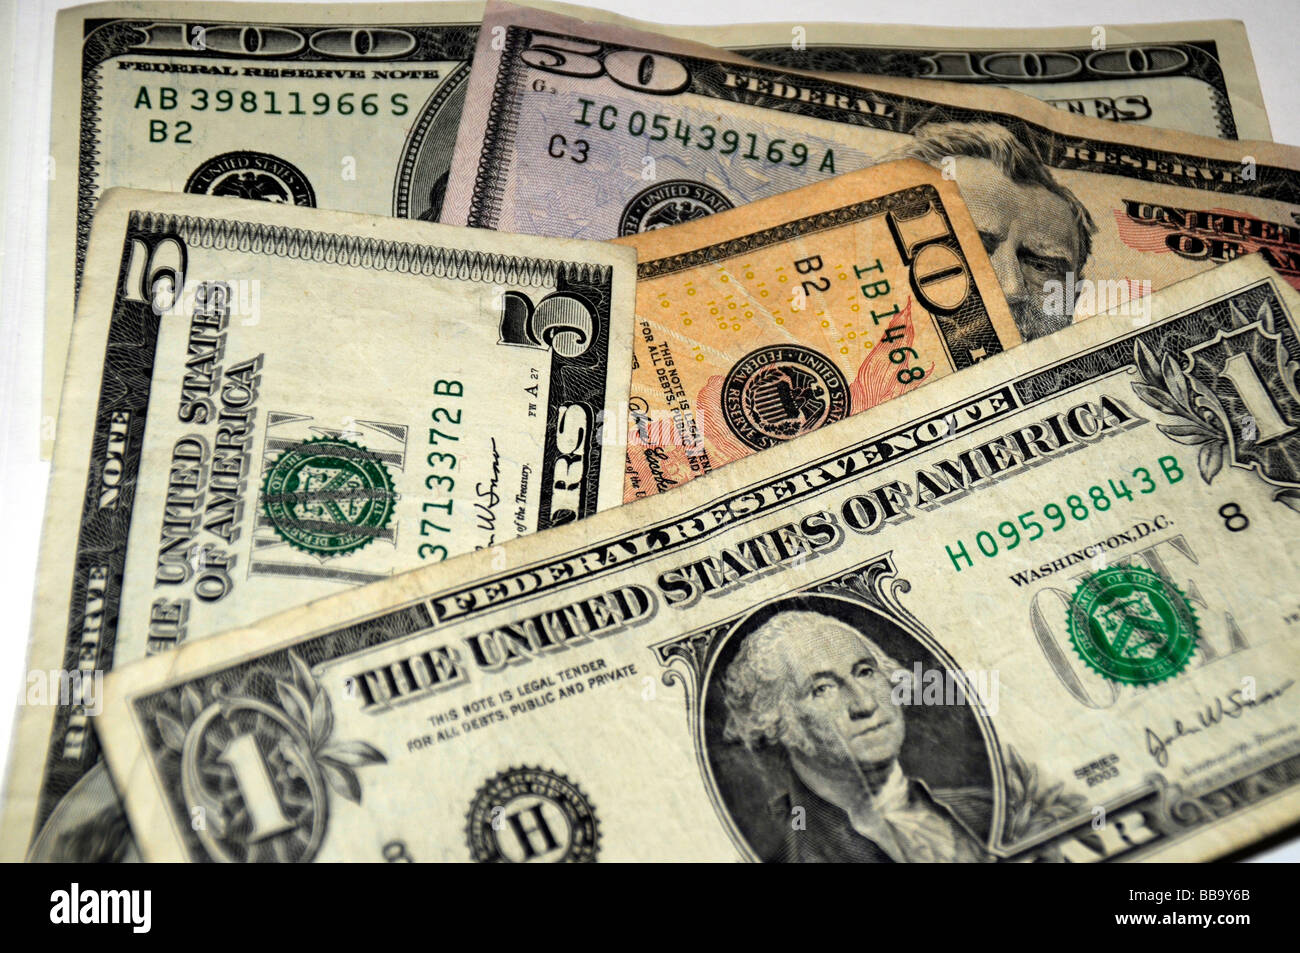 Assortment of US currency - Stock Image